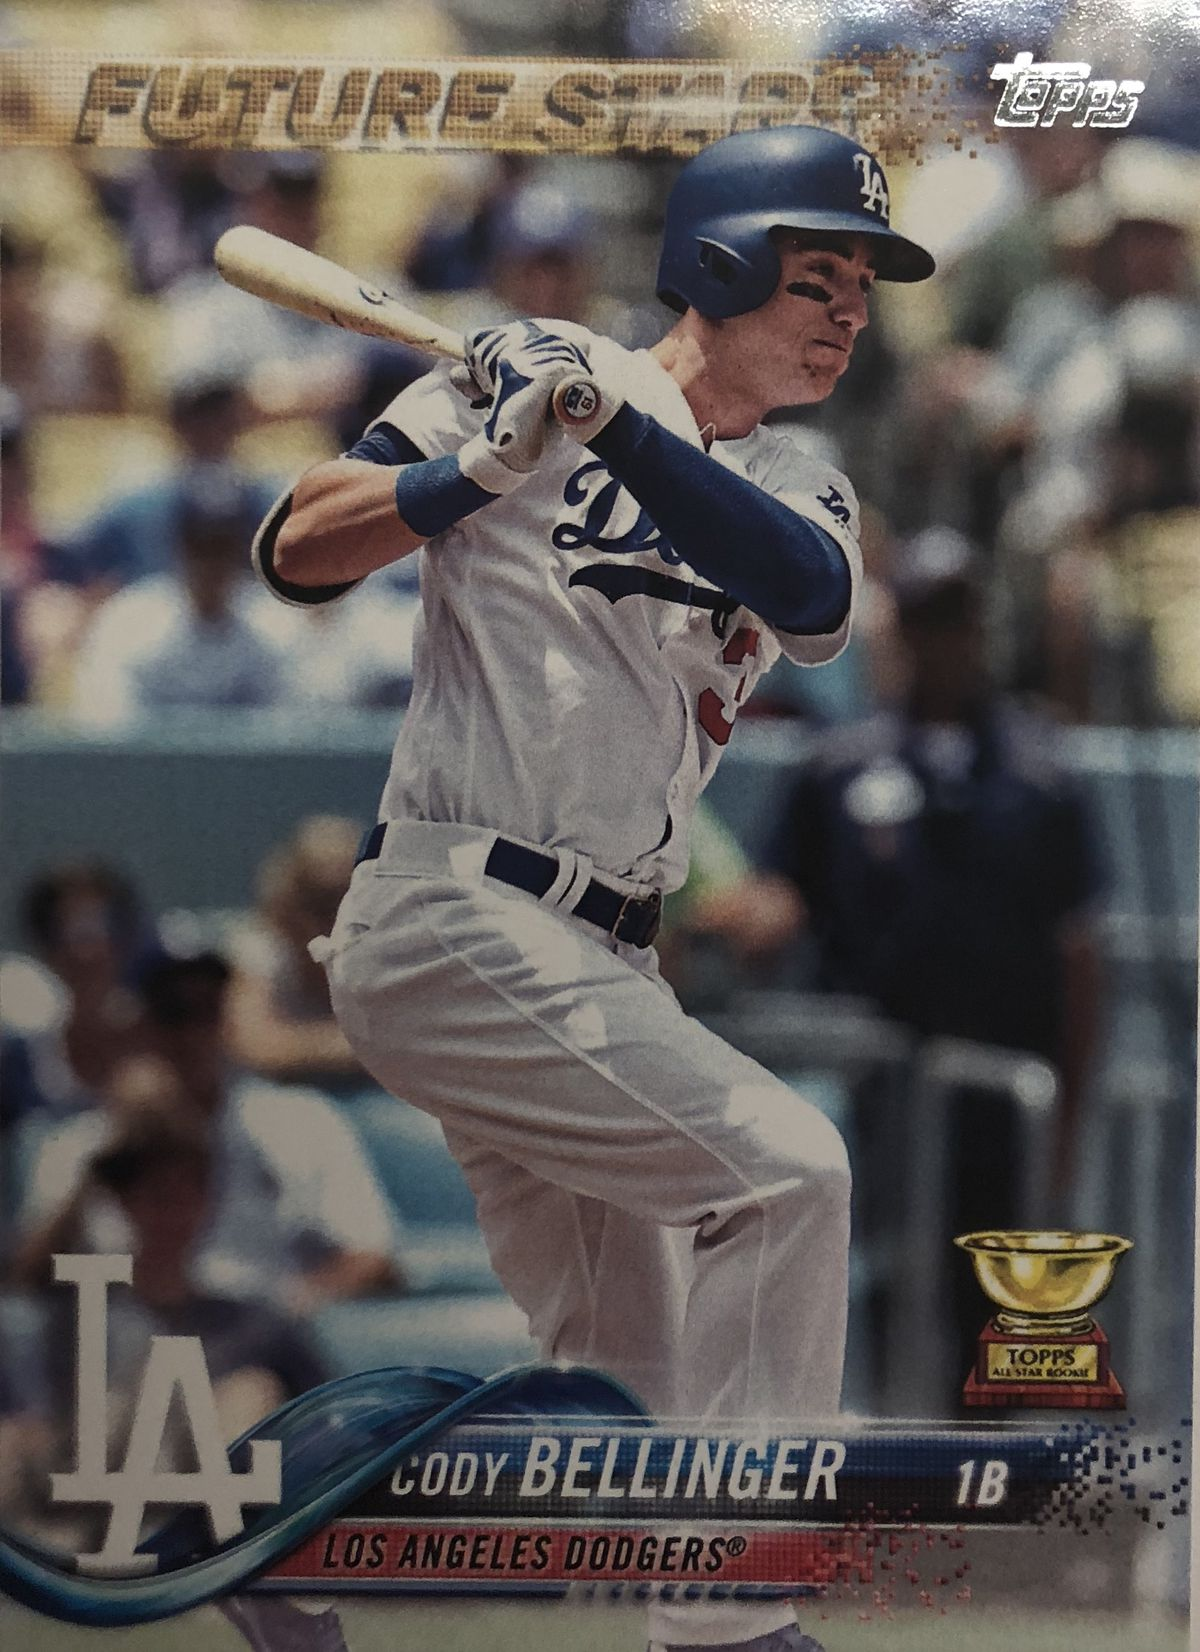 2018 Topps Series 1 Baseball Cards Review True Blue La